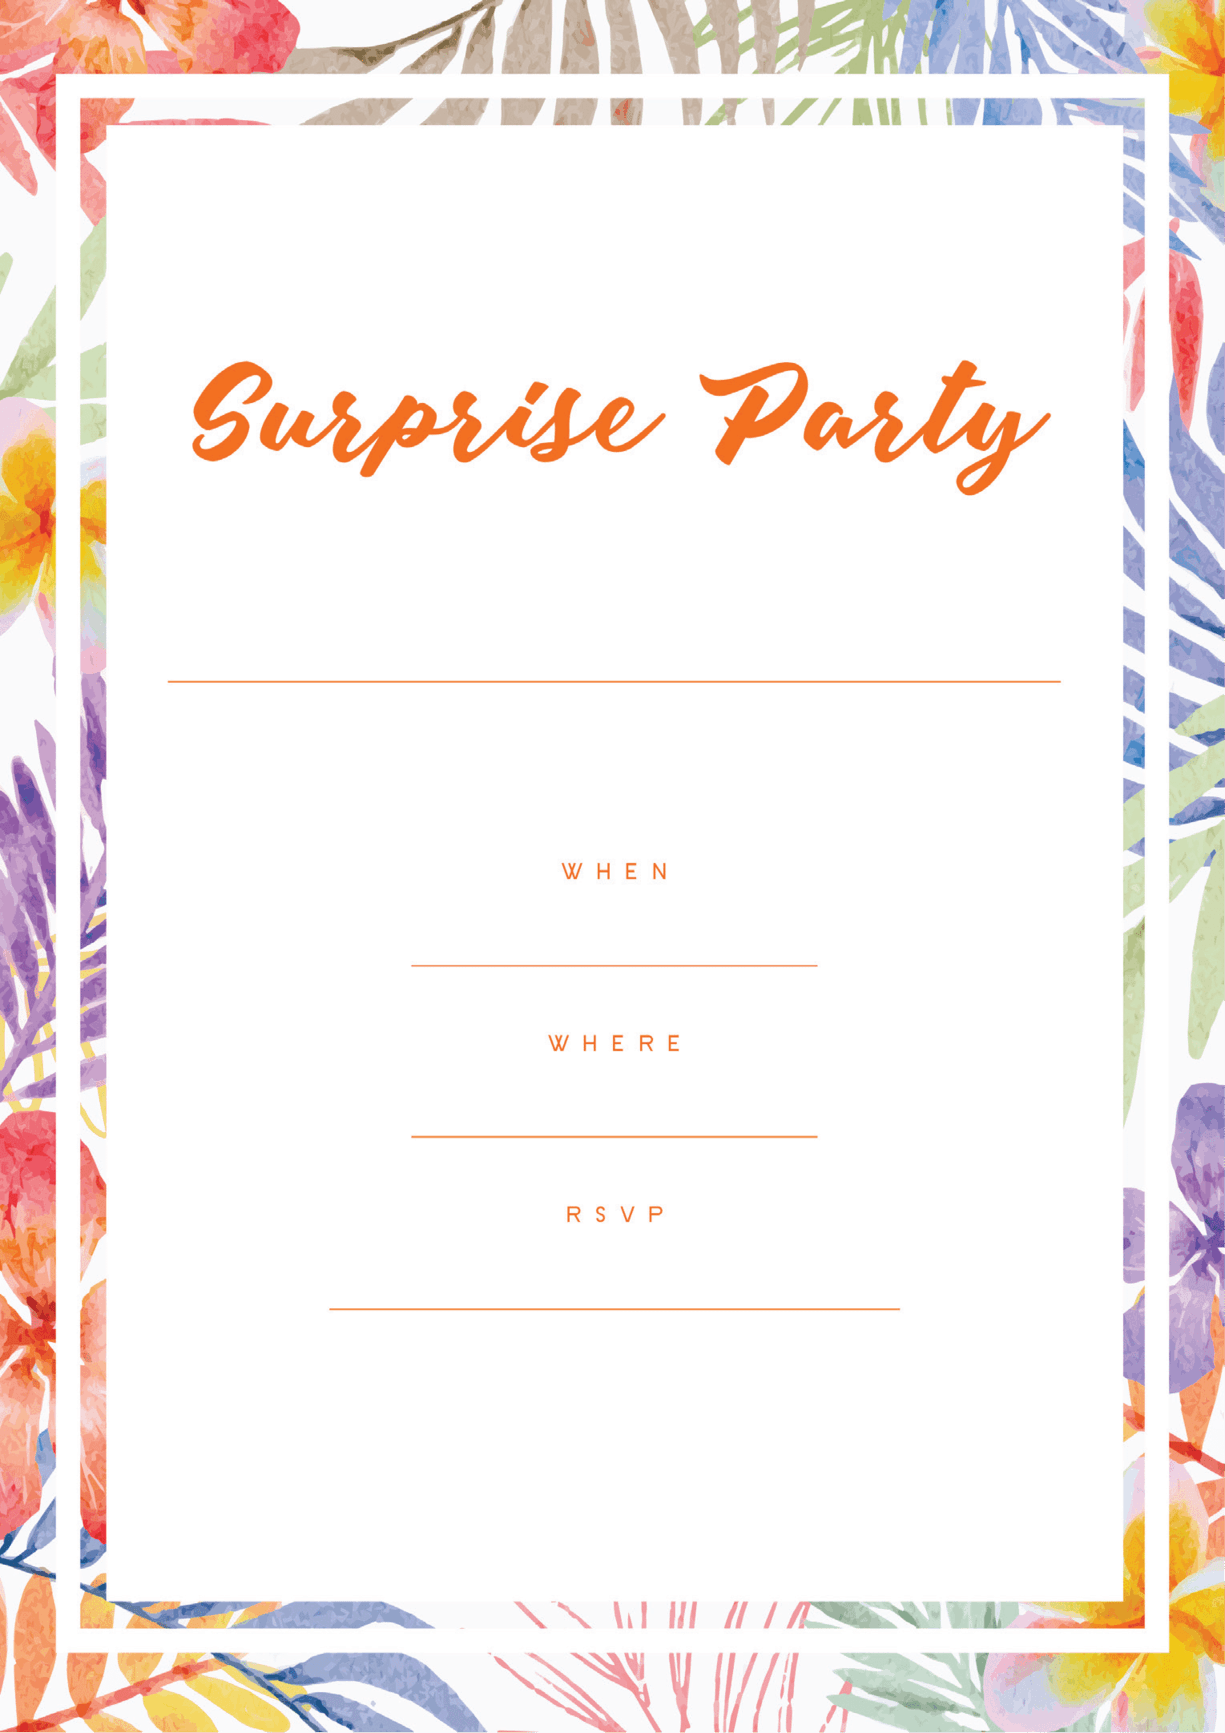 Surprise party invitation floral border design